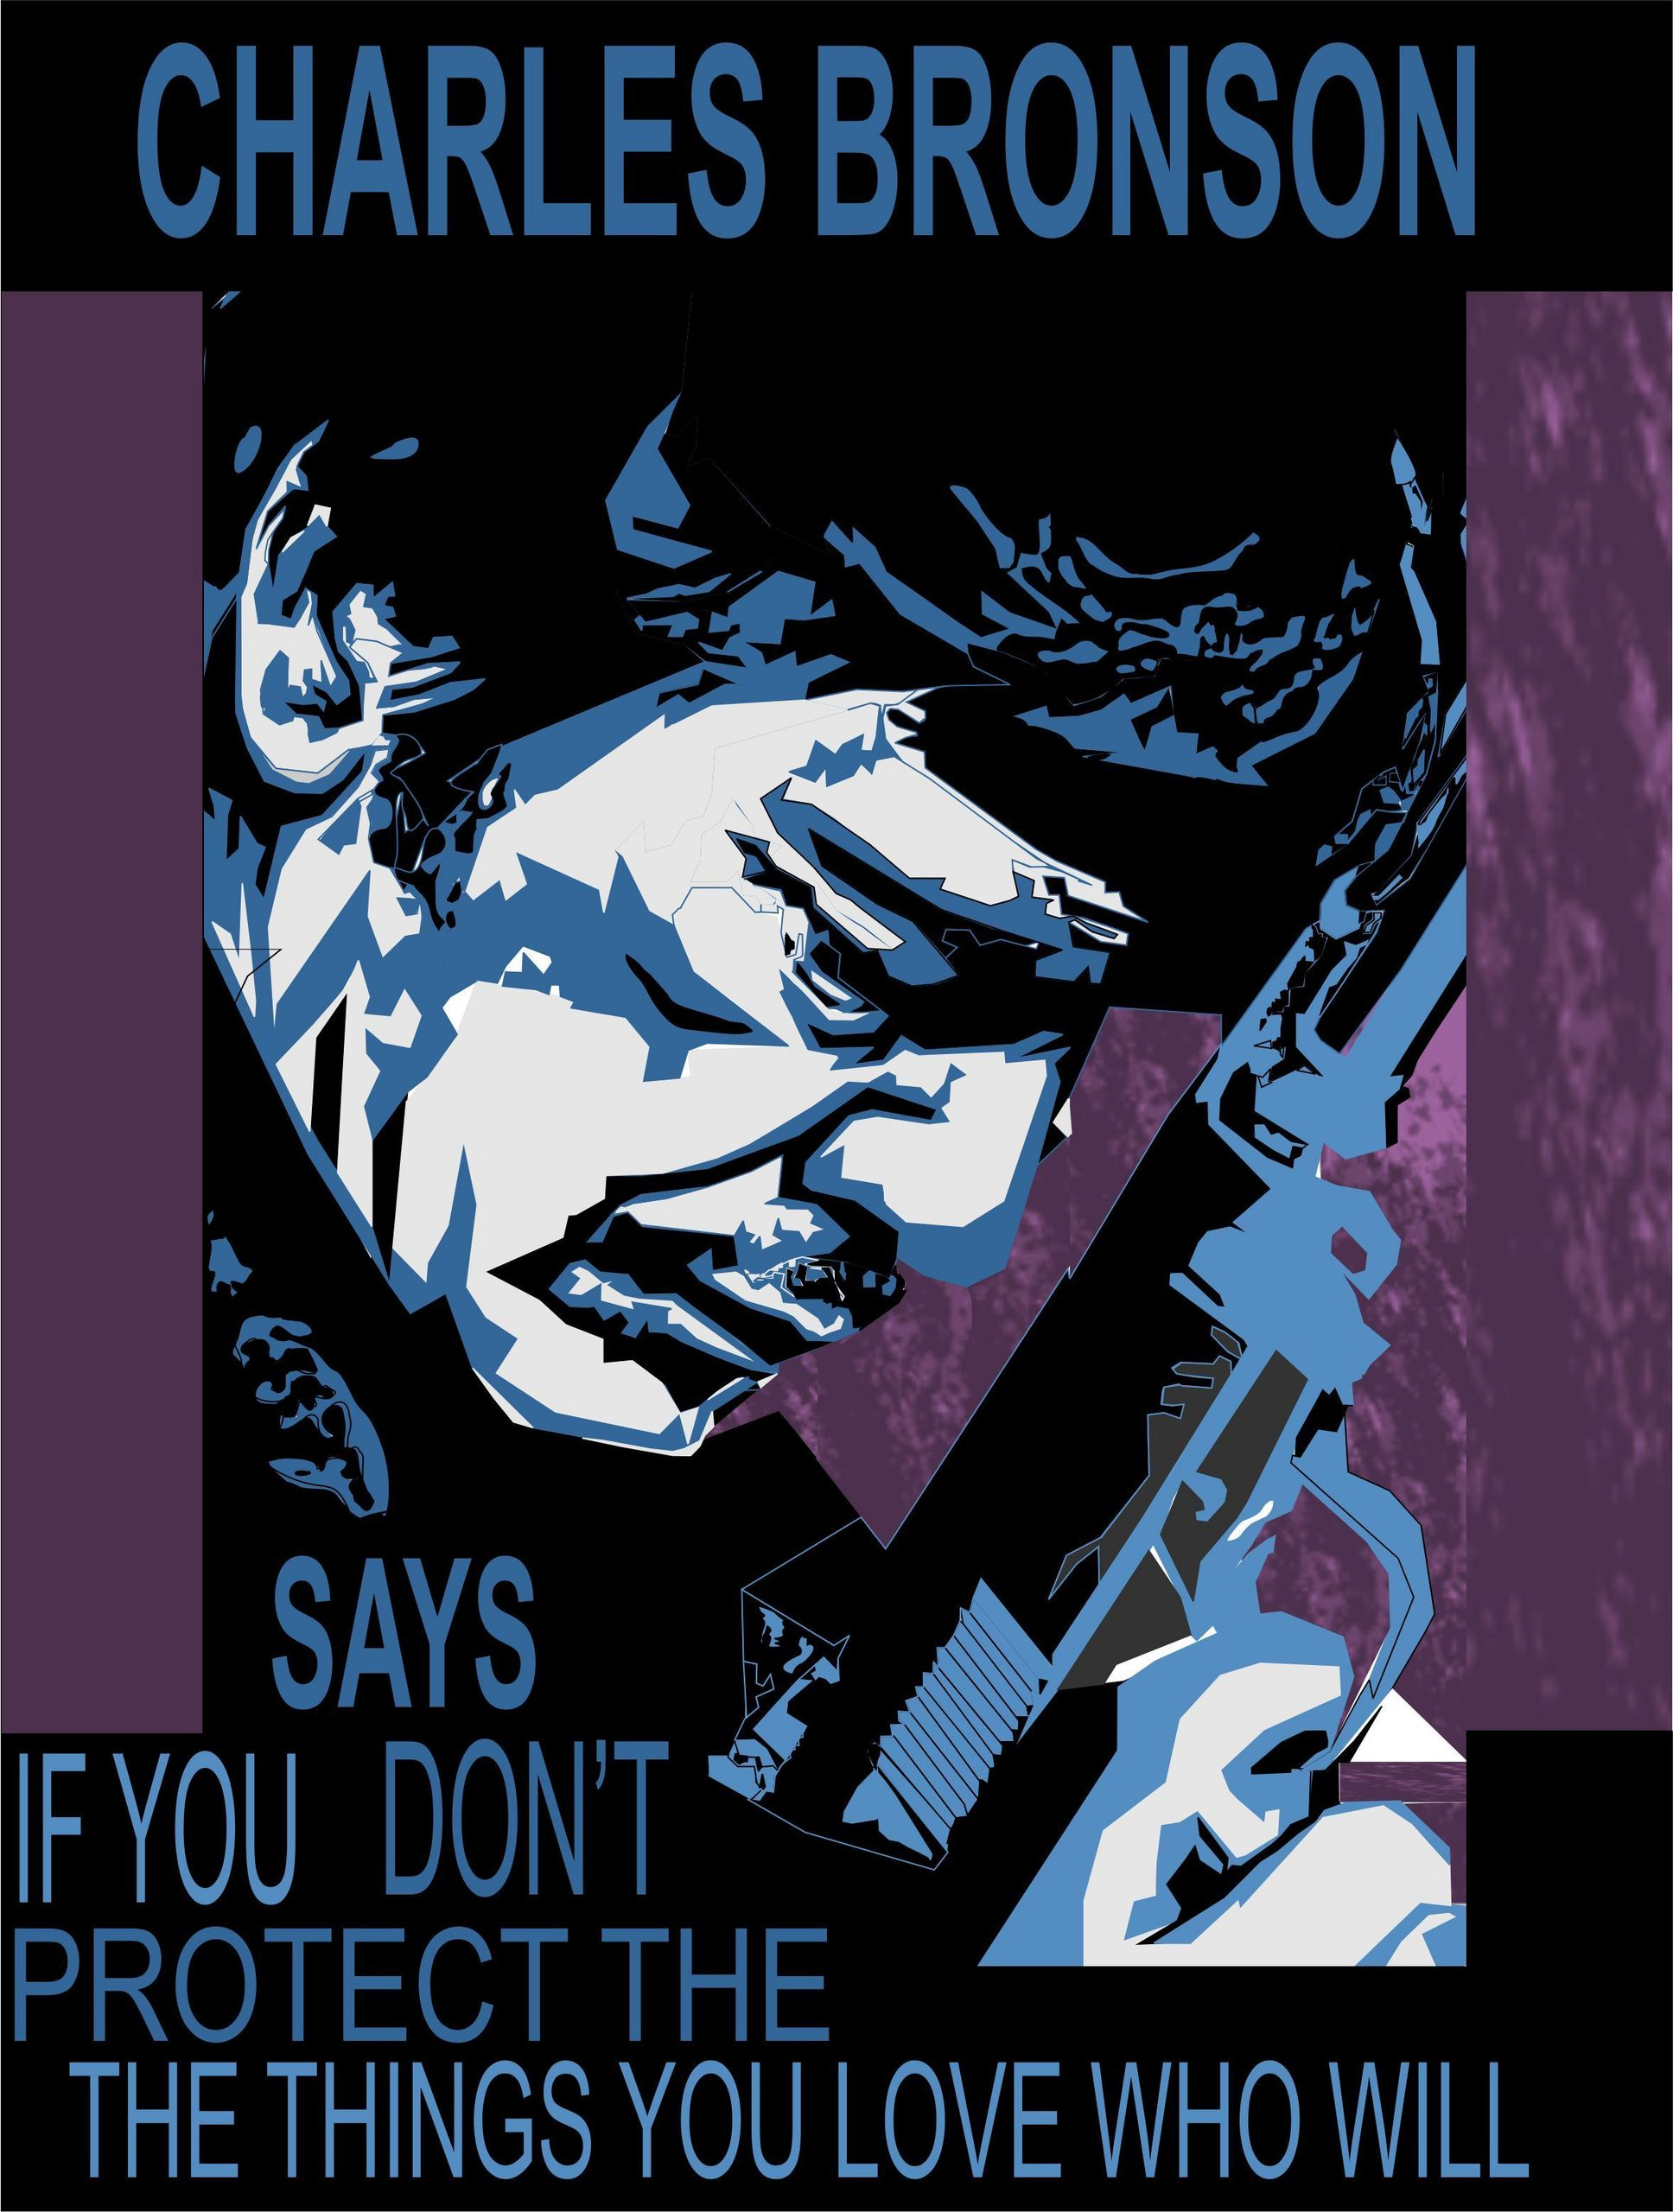 Charles Bronson PSA poster - Movies Fan Art (17483573 ...